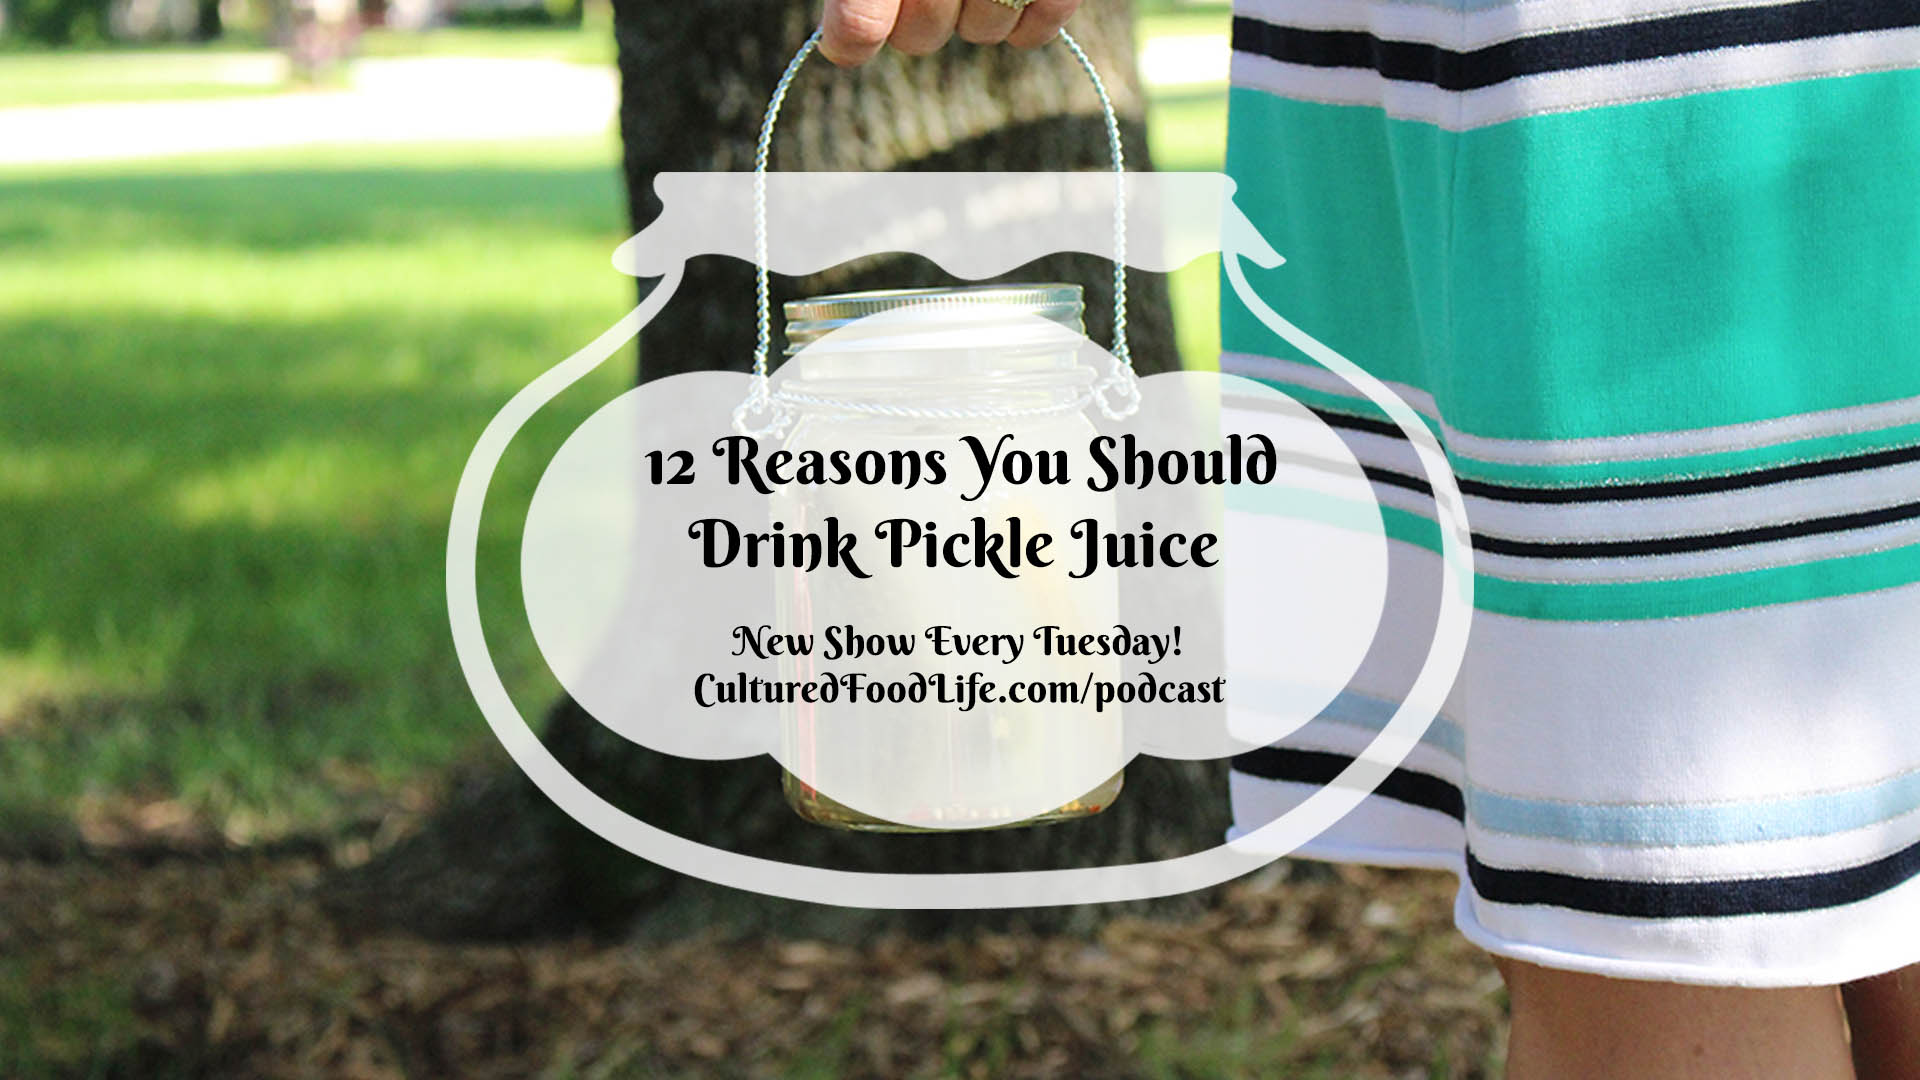 Episode 17: 12 Reasons You Should Drink Pickle Juice - Cultured Food